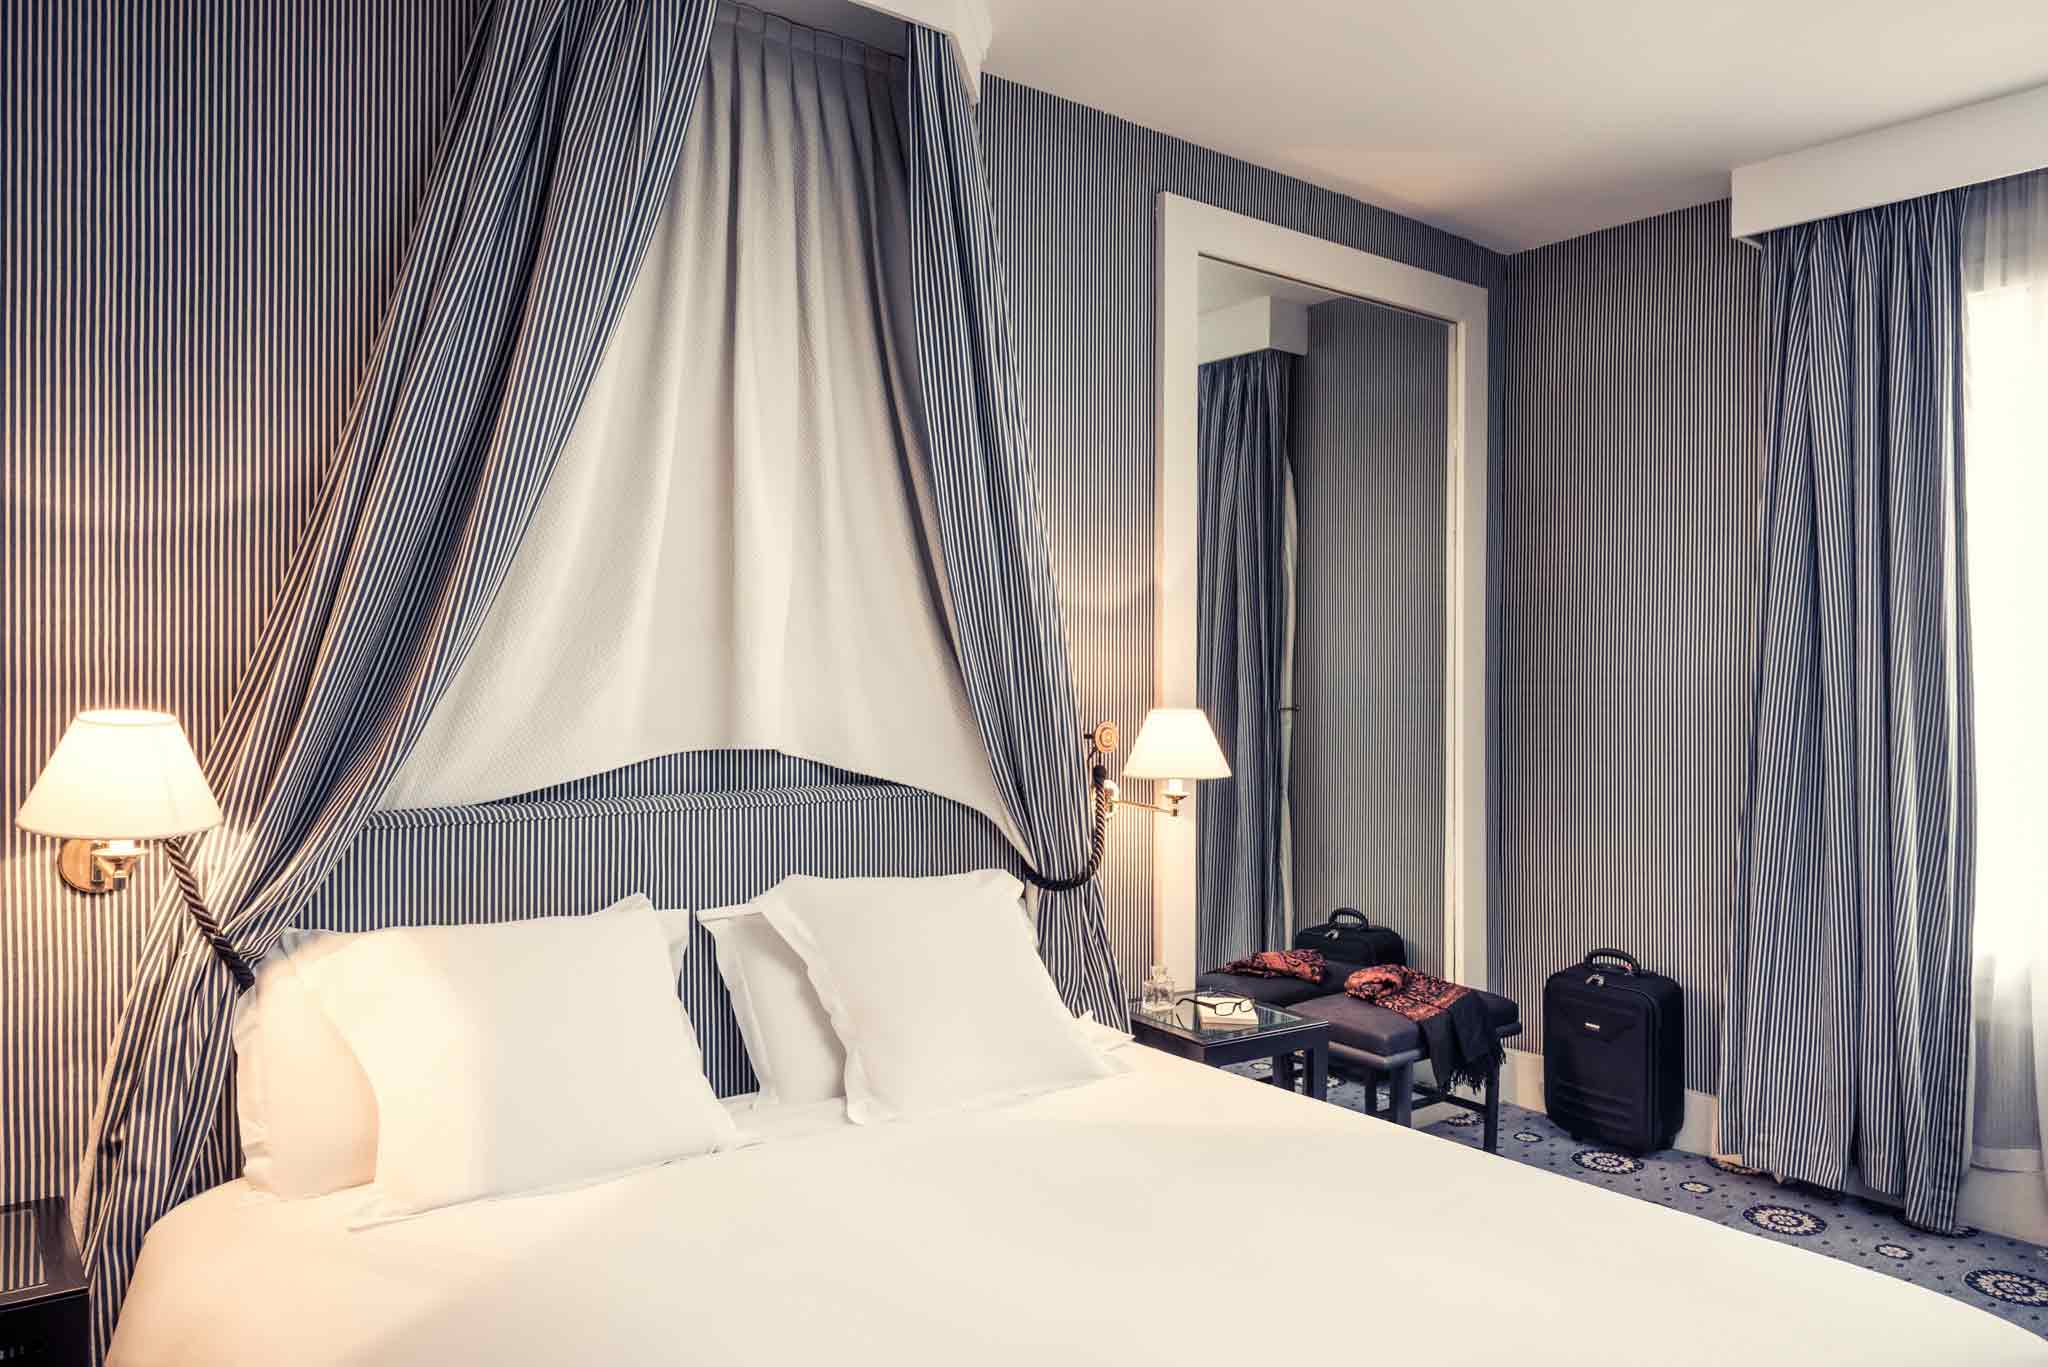 Mercure Paris Champs Elysees Zimmeransicht